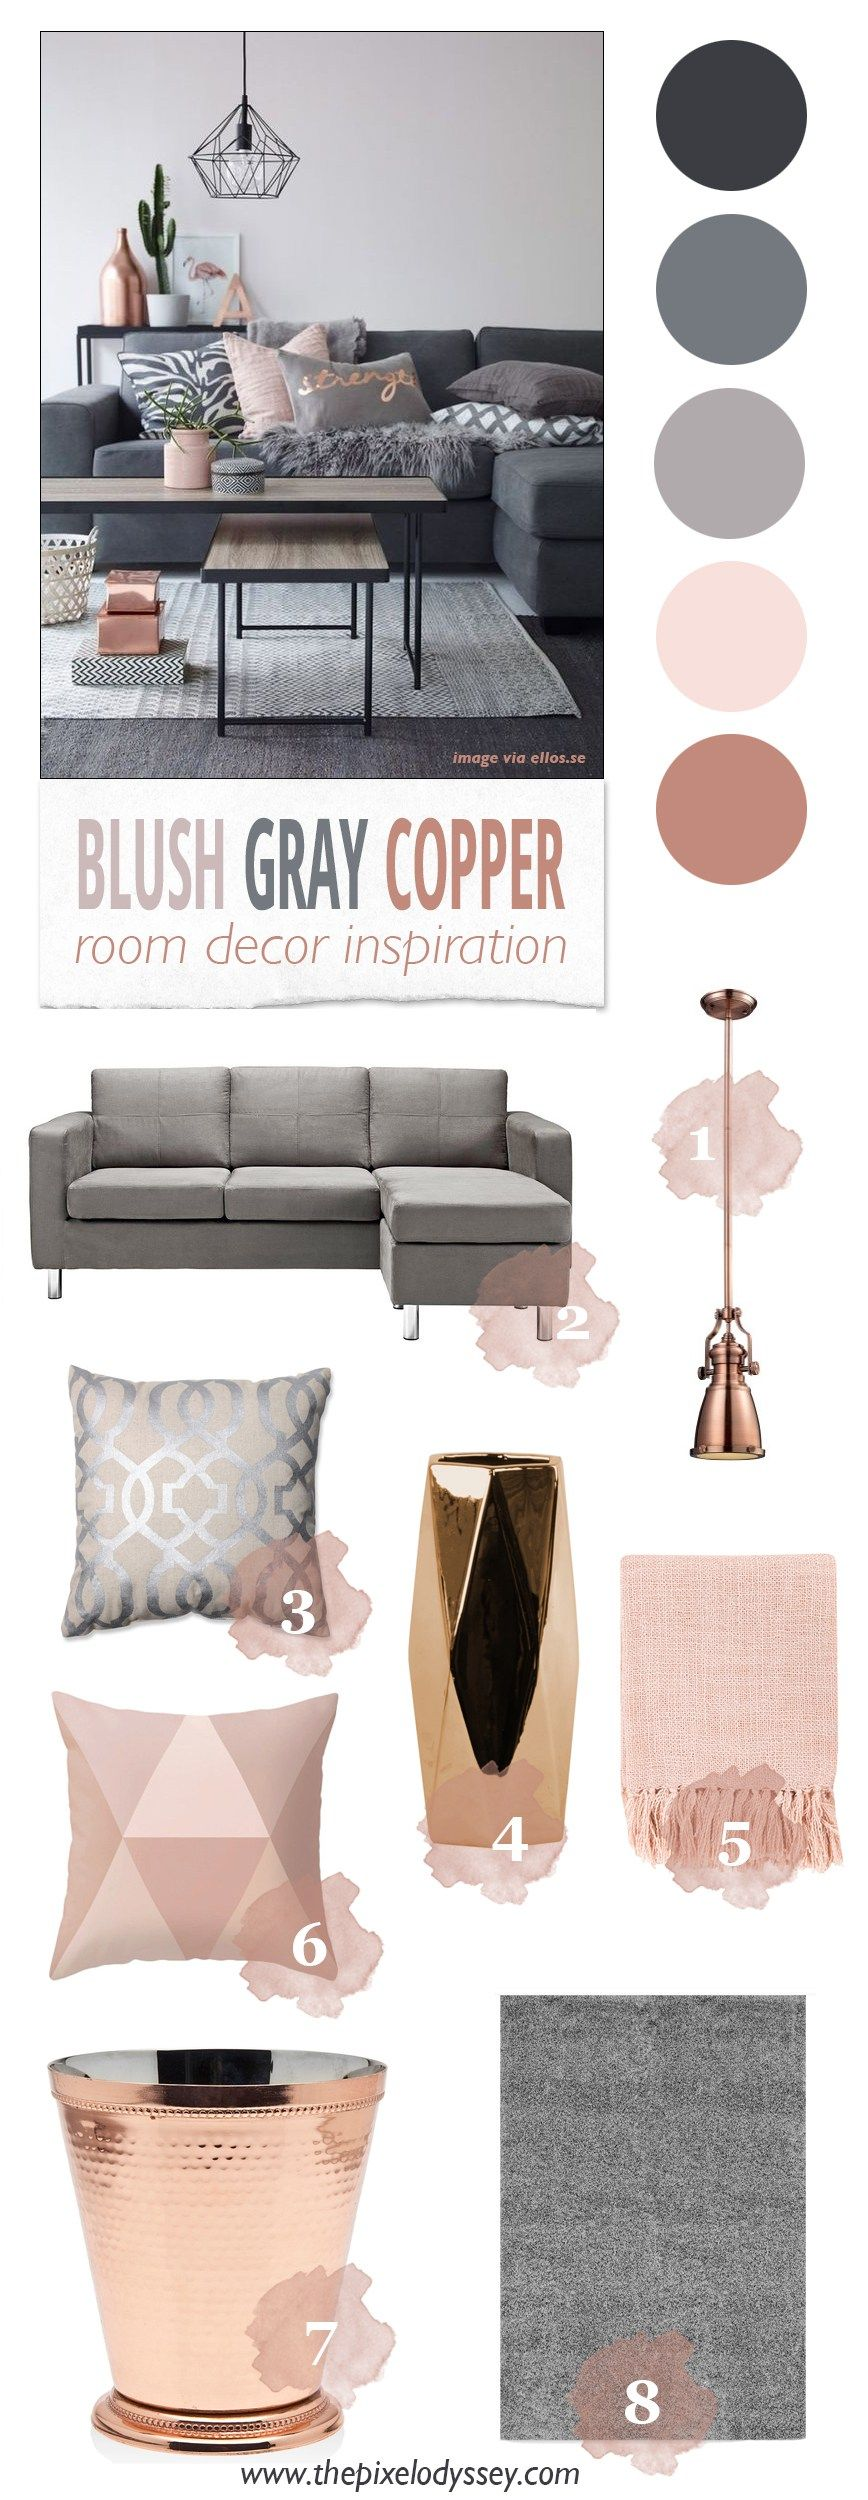 Blush gray copper room decor inspiration room decor for Bedroom decor and accessories